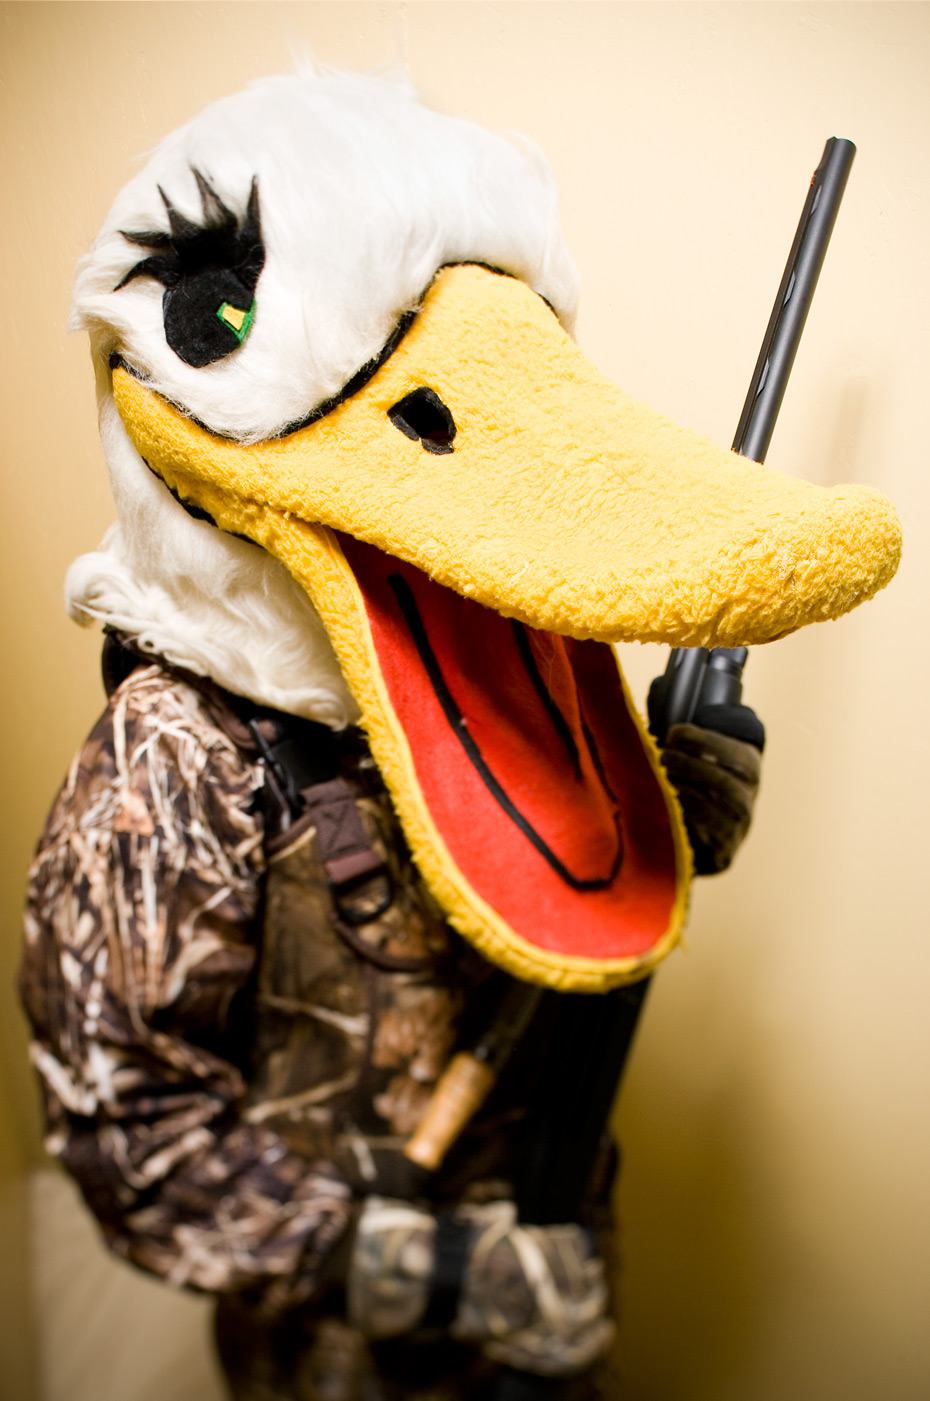 Duck holding a shotgun